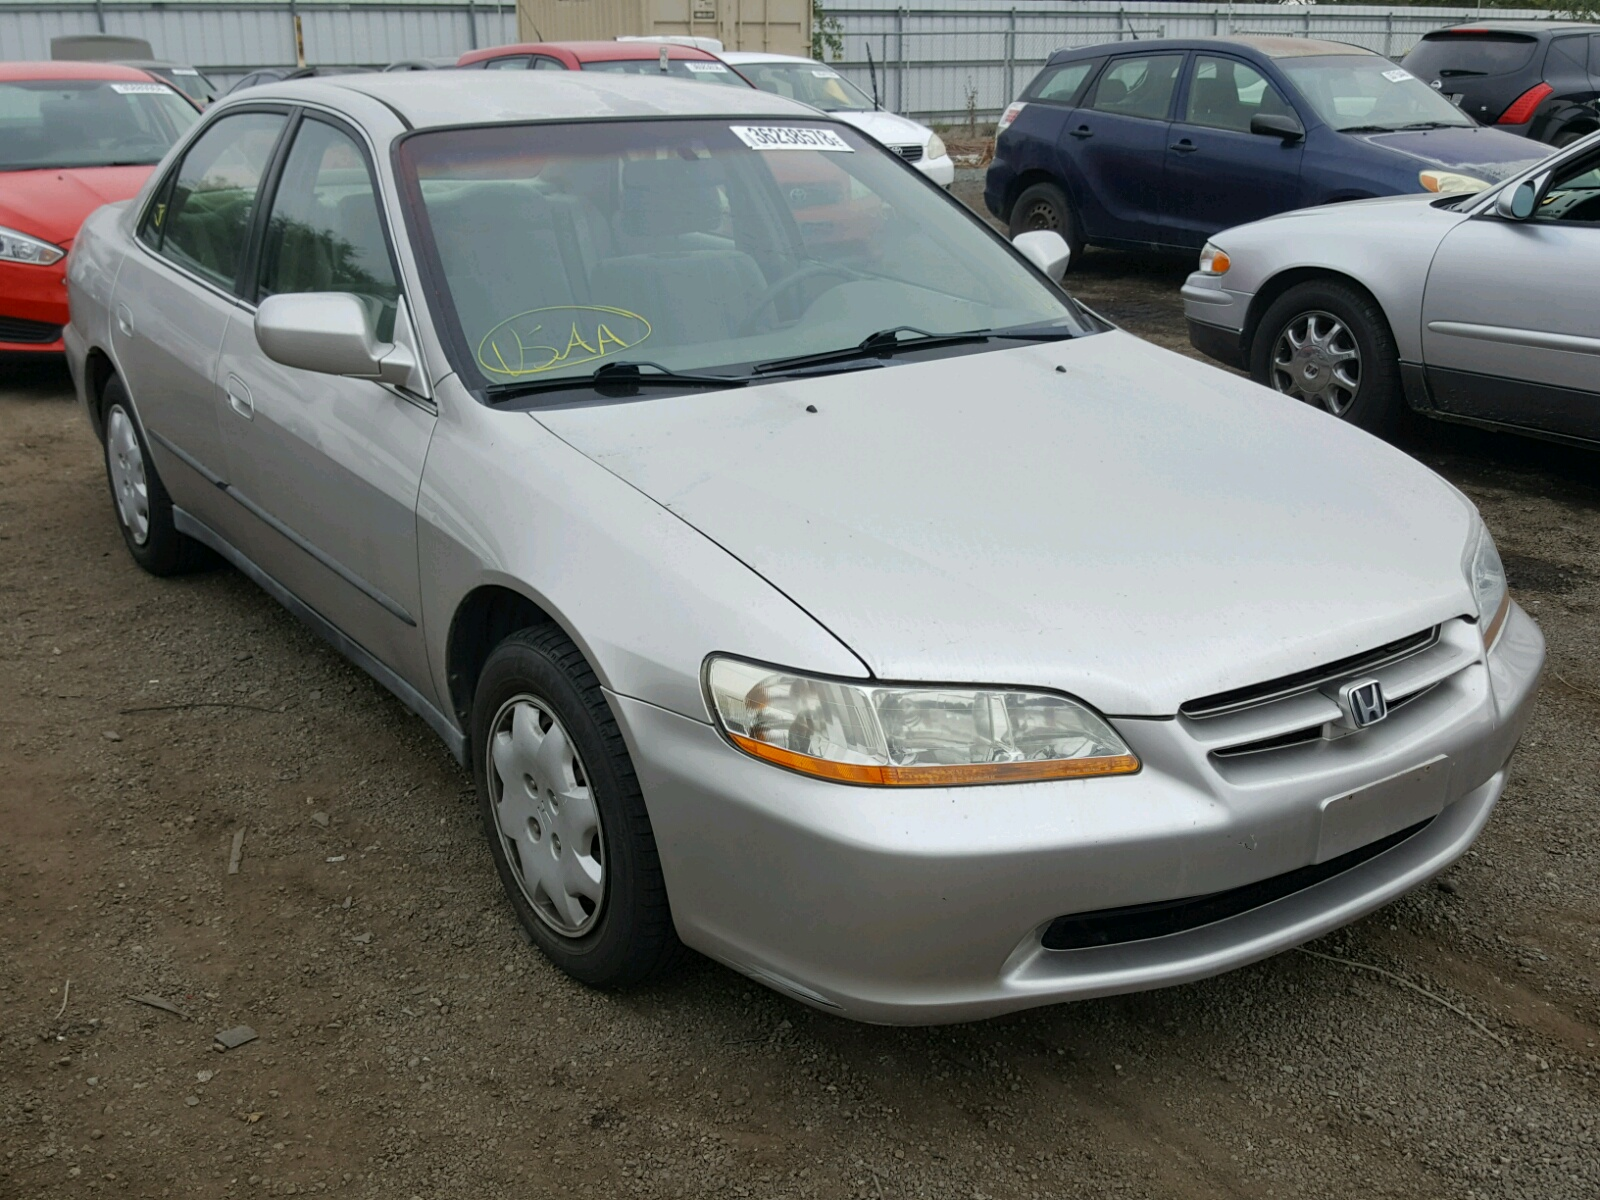 1999 Honda Accord LX for sale at Copart San Diego CA Lot